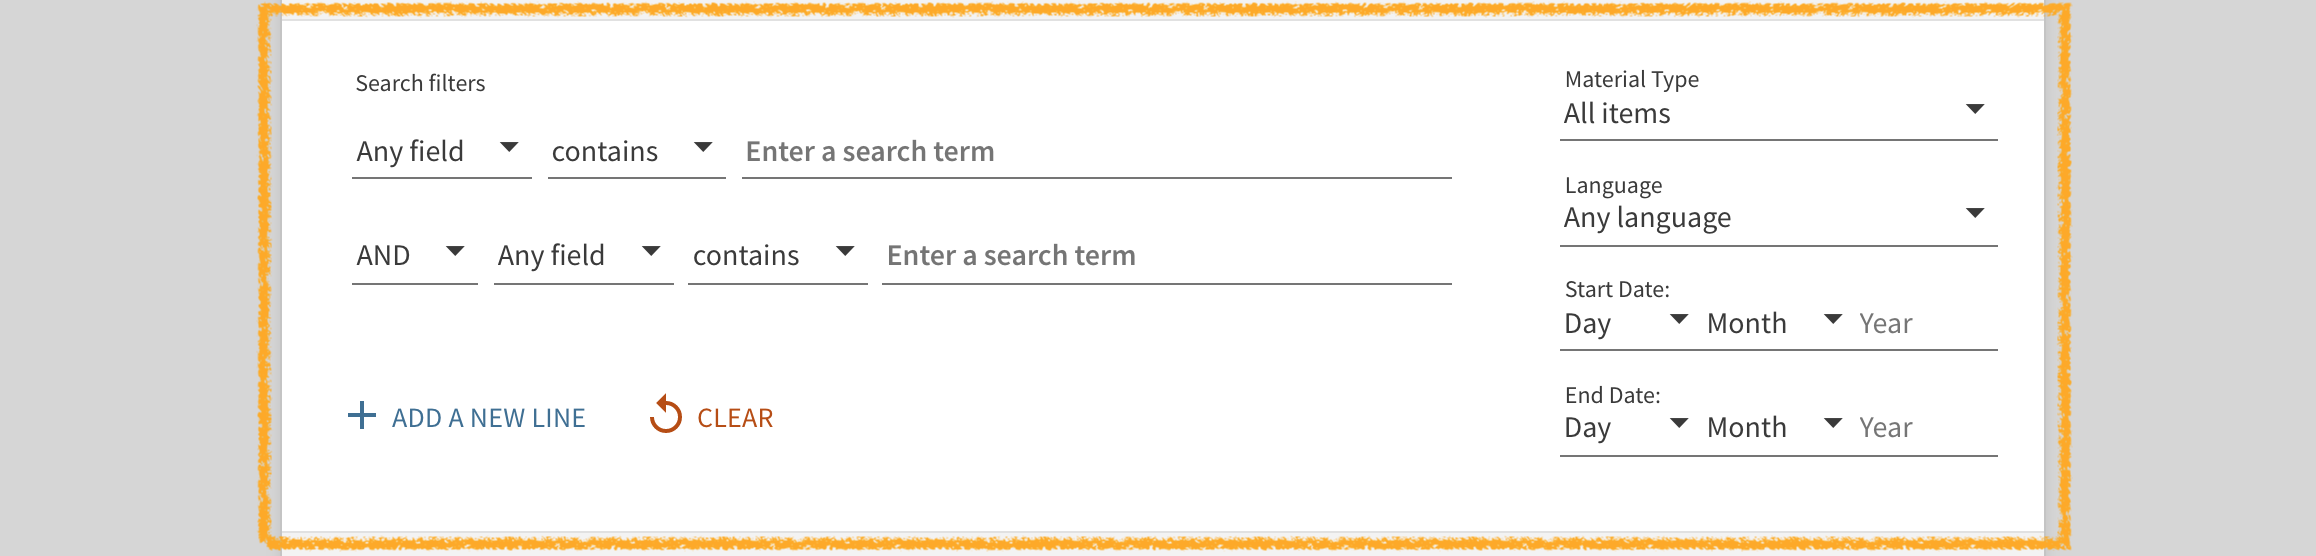 UC Library Search Advanced Search filter menu search fields